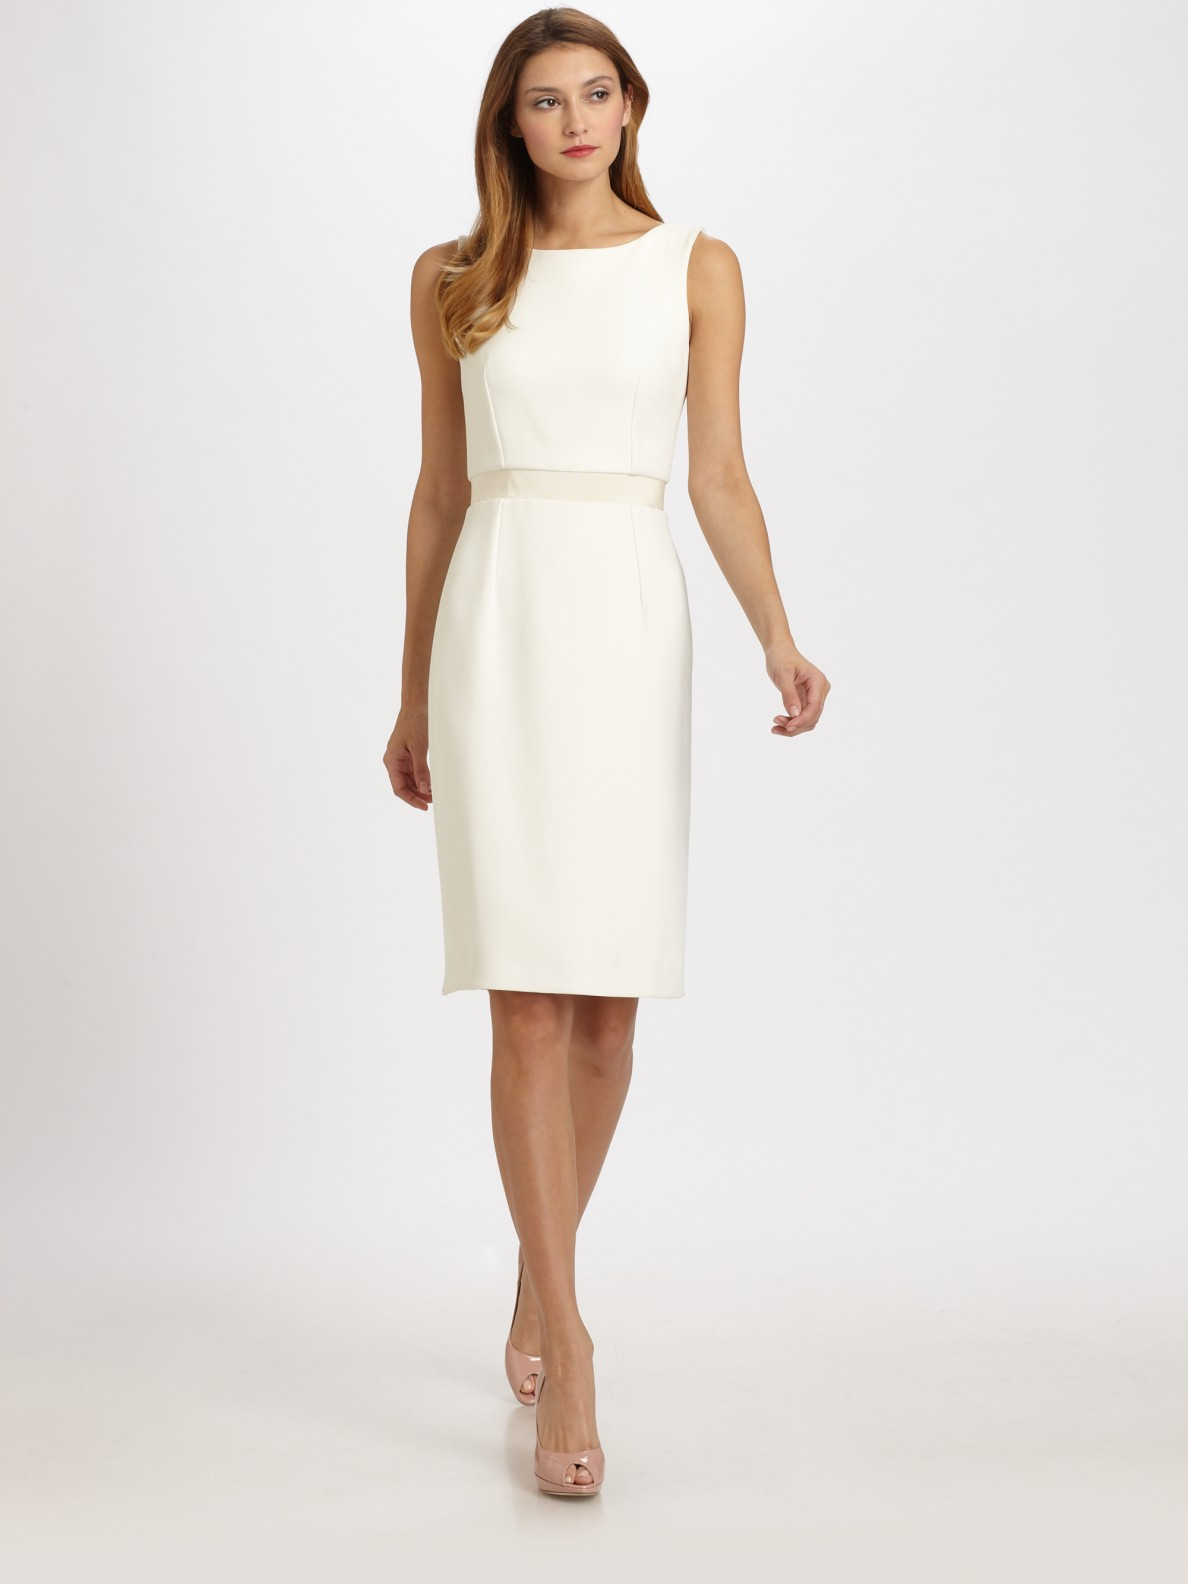 Dior Shantung Dress in White